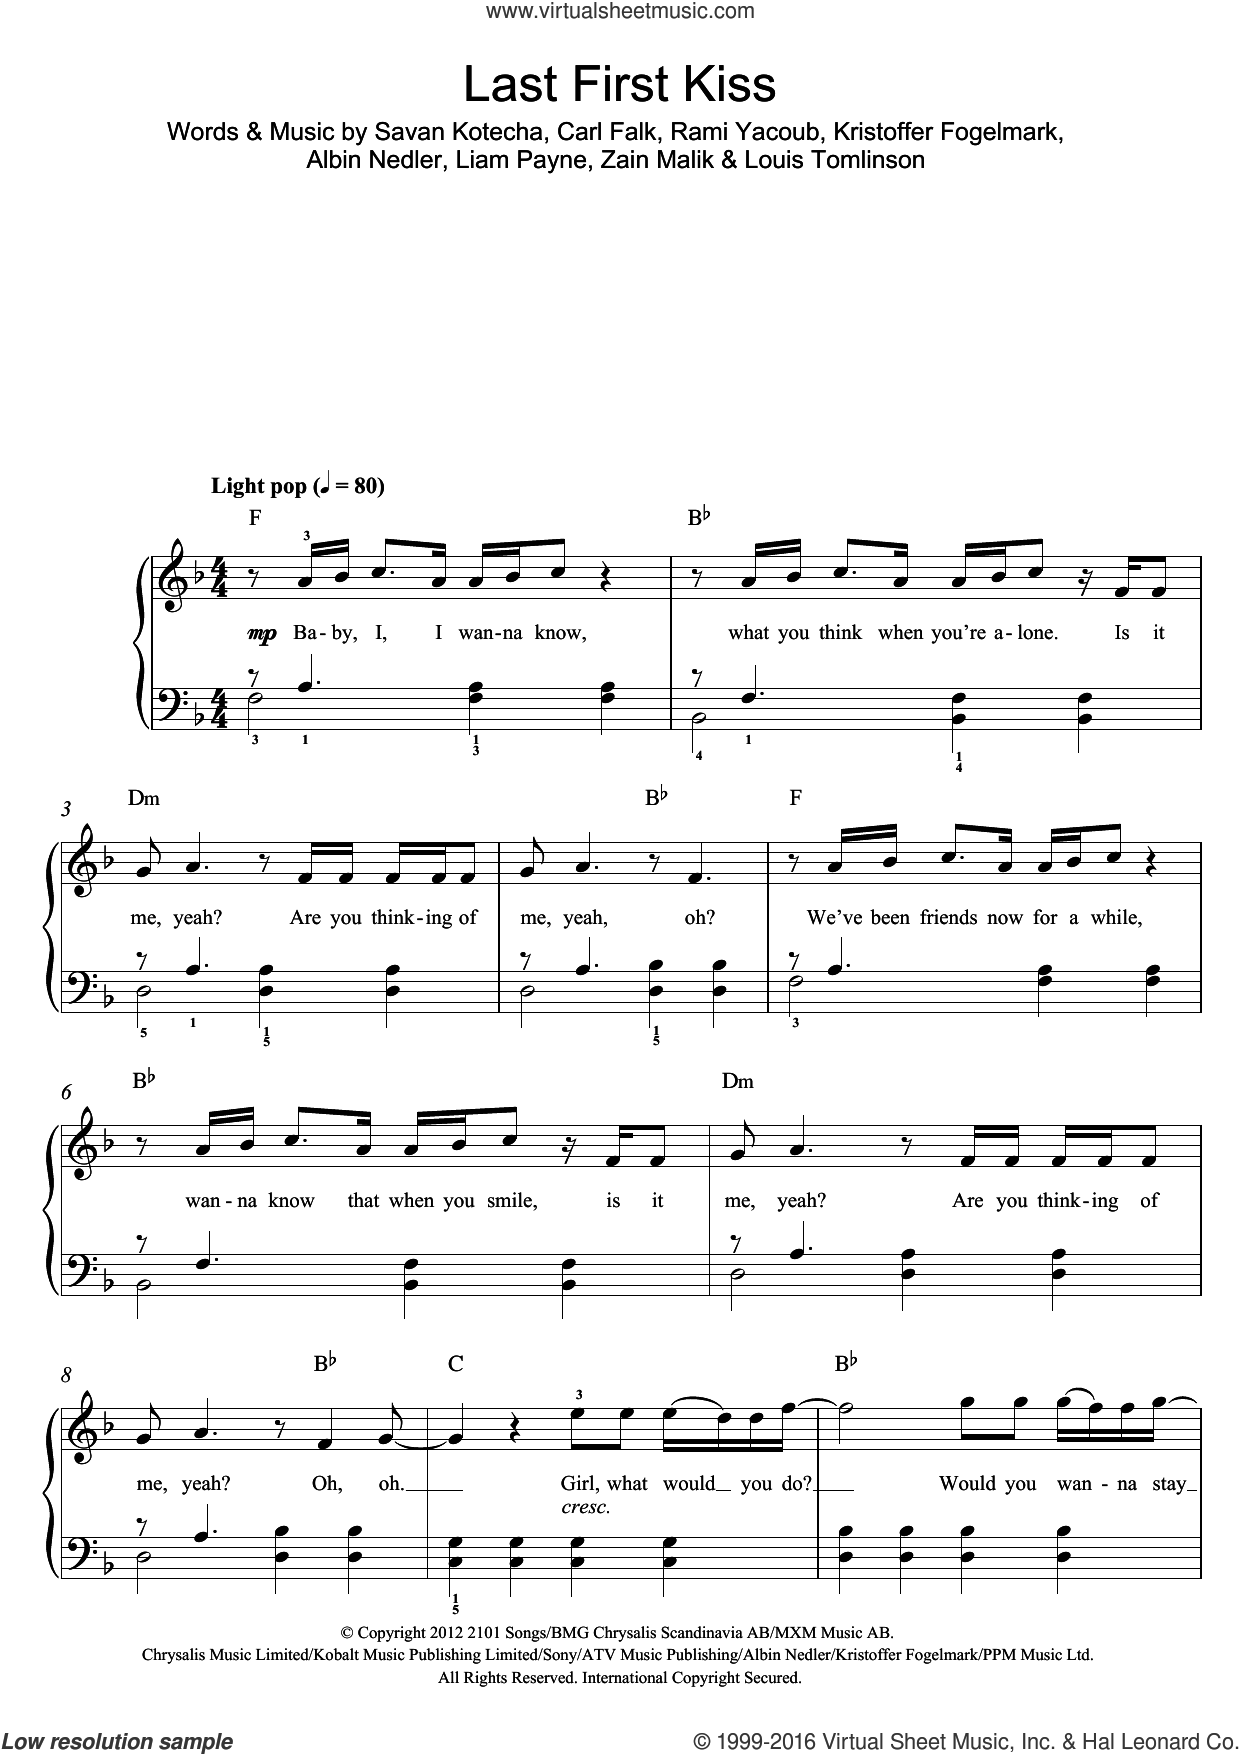 Last First Kiss sheet music for piano solo (beginners) by One Direction, Albin Nedler, Carl Falk, Kristoffer Fogelmark, Liam Payne, Louis Tomlinson, Rami, Savan Kotecha and Zain Malik, beginner piano (beginners)